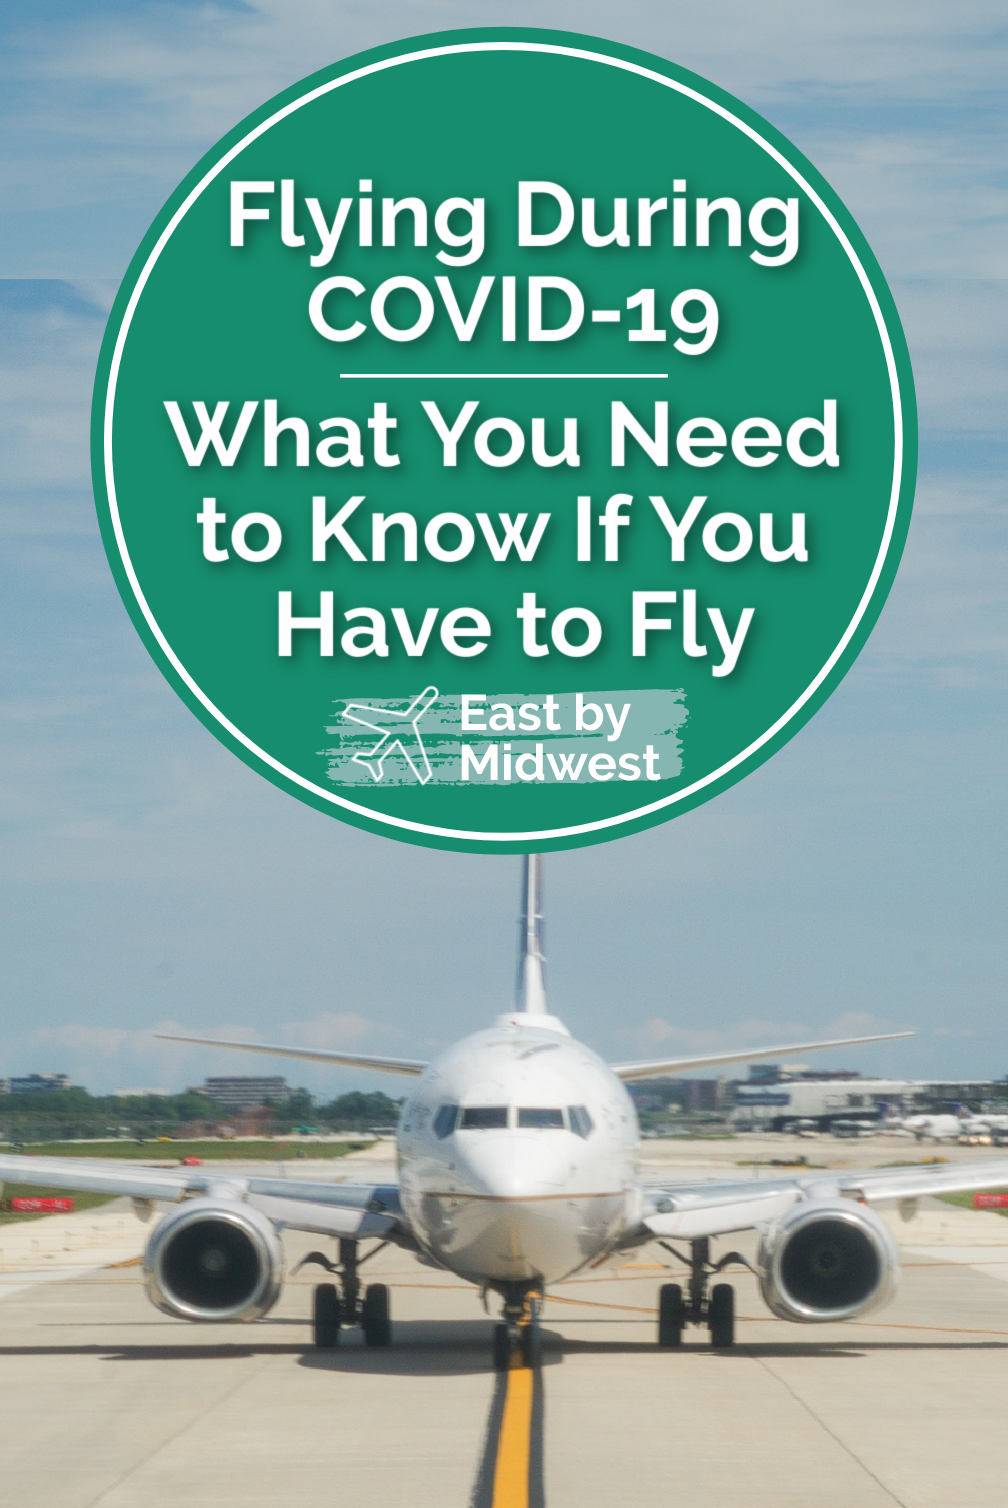 Flying During COVID-19 - What You Need to Know If You Have to Fly